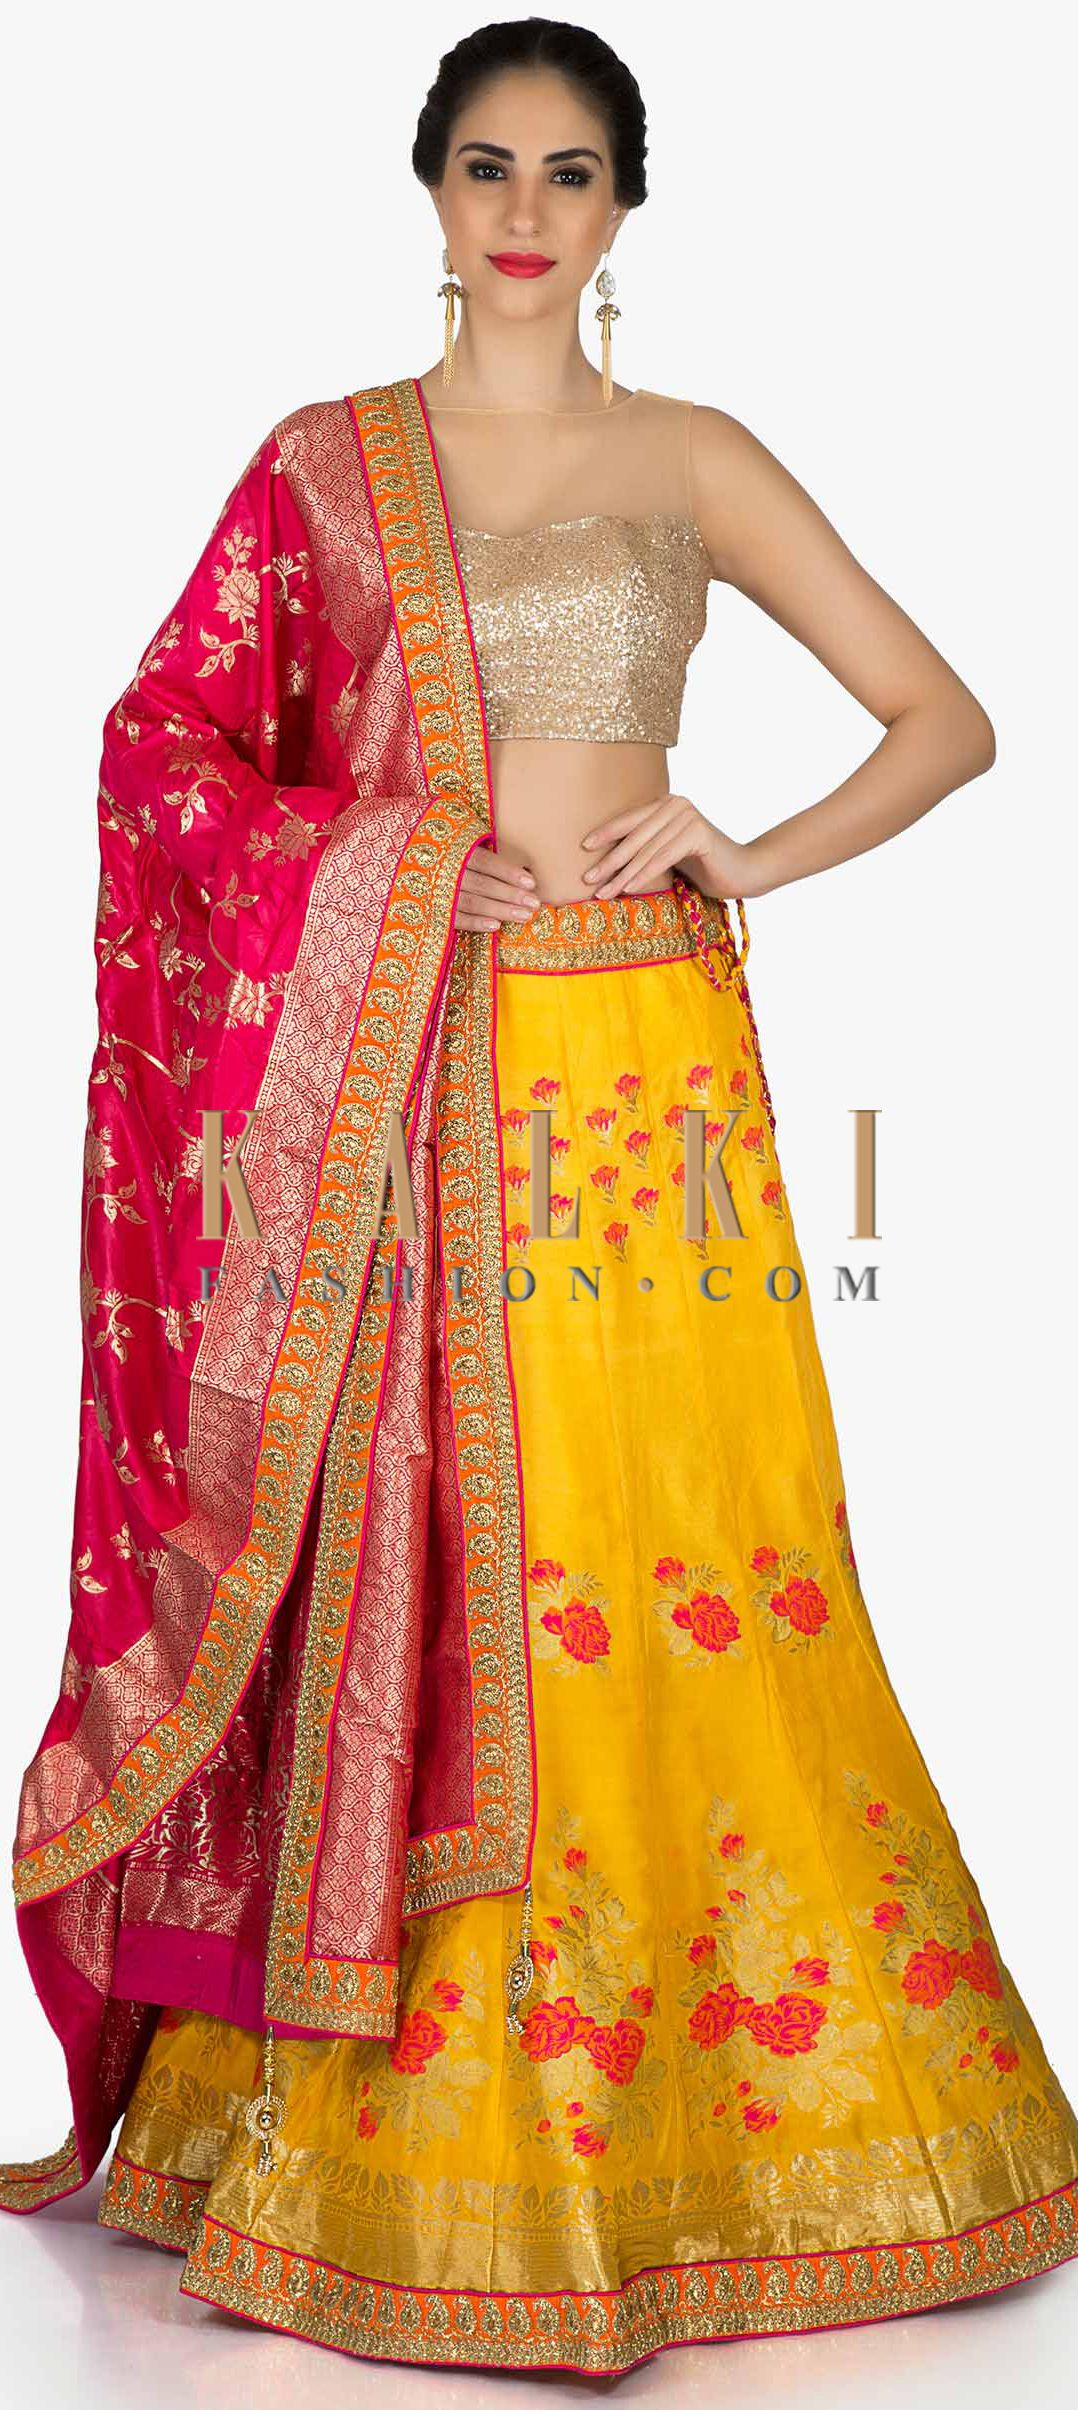 5a09de46280334 Amber yellow lehenga in floral motif with contrast rani pink dupatta in  brocade only on Kalki